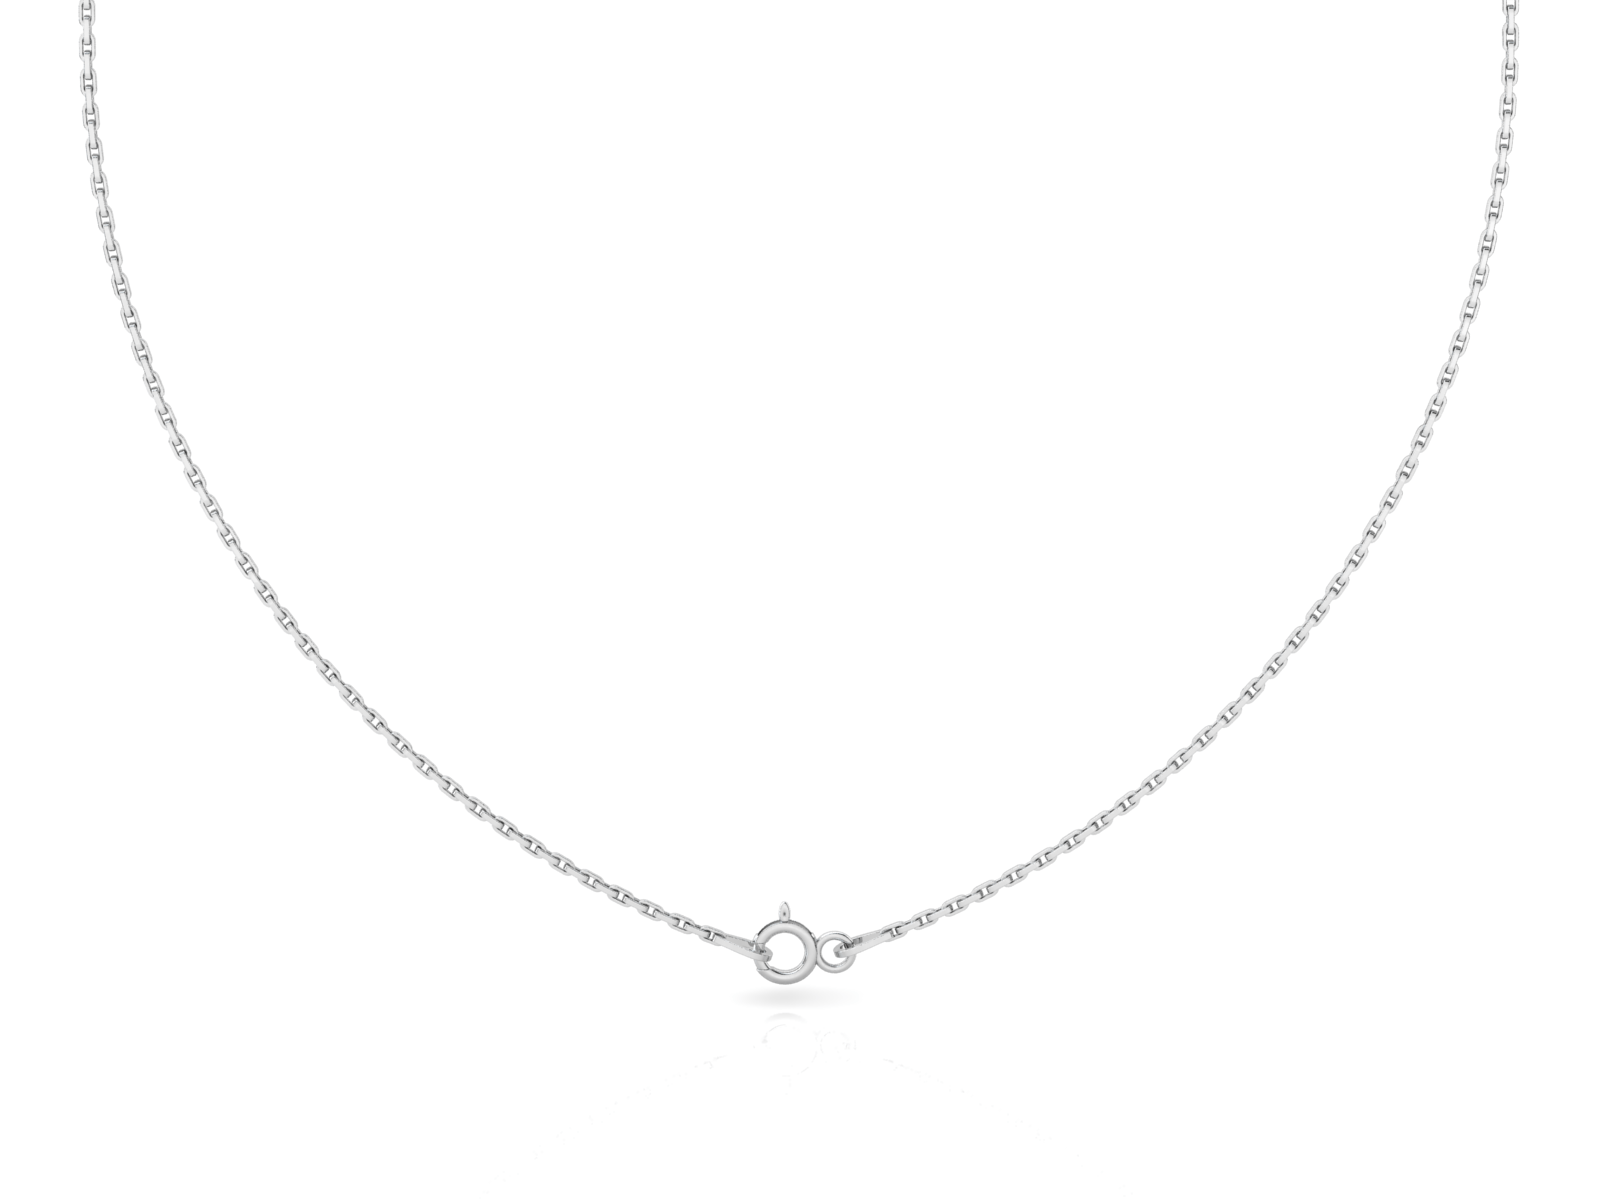 "Cable Light (1.2mm) Sterling Silver Chain, 16"", 18"", 20"", 24"", 30"""